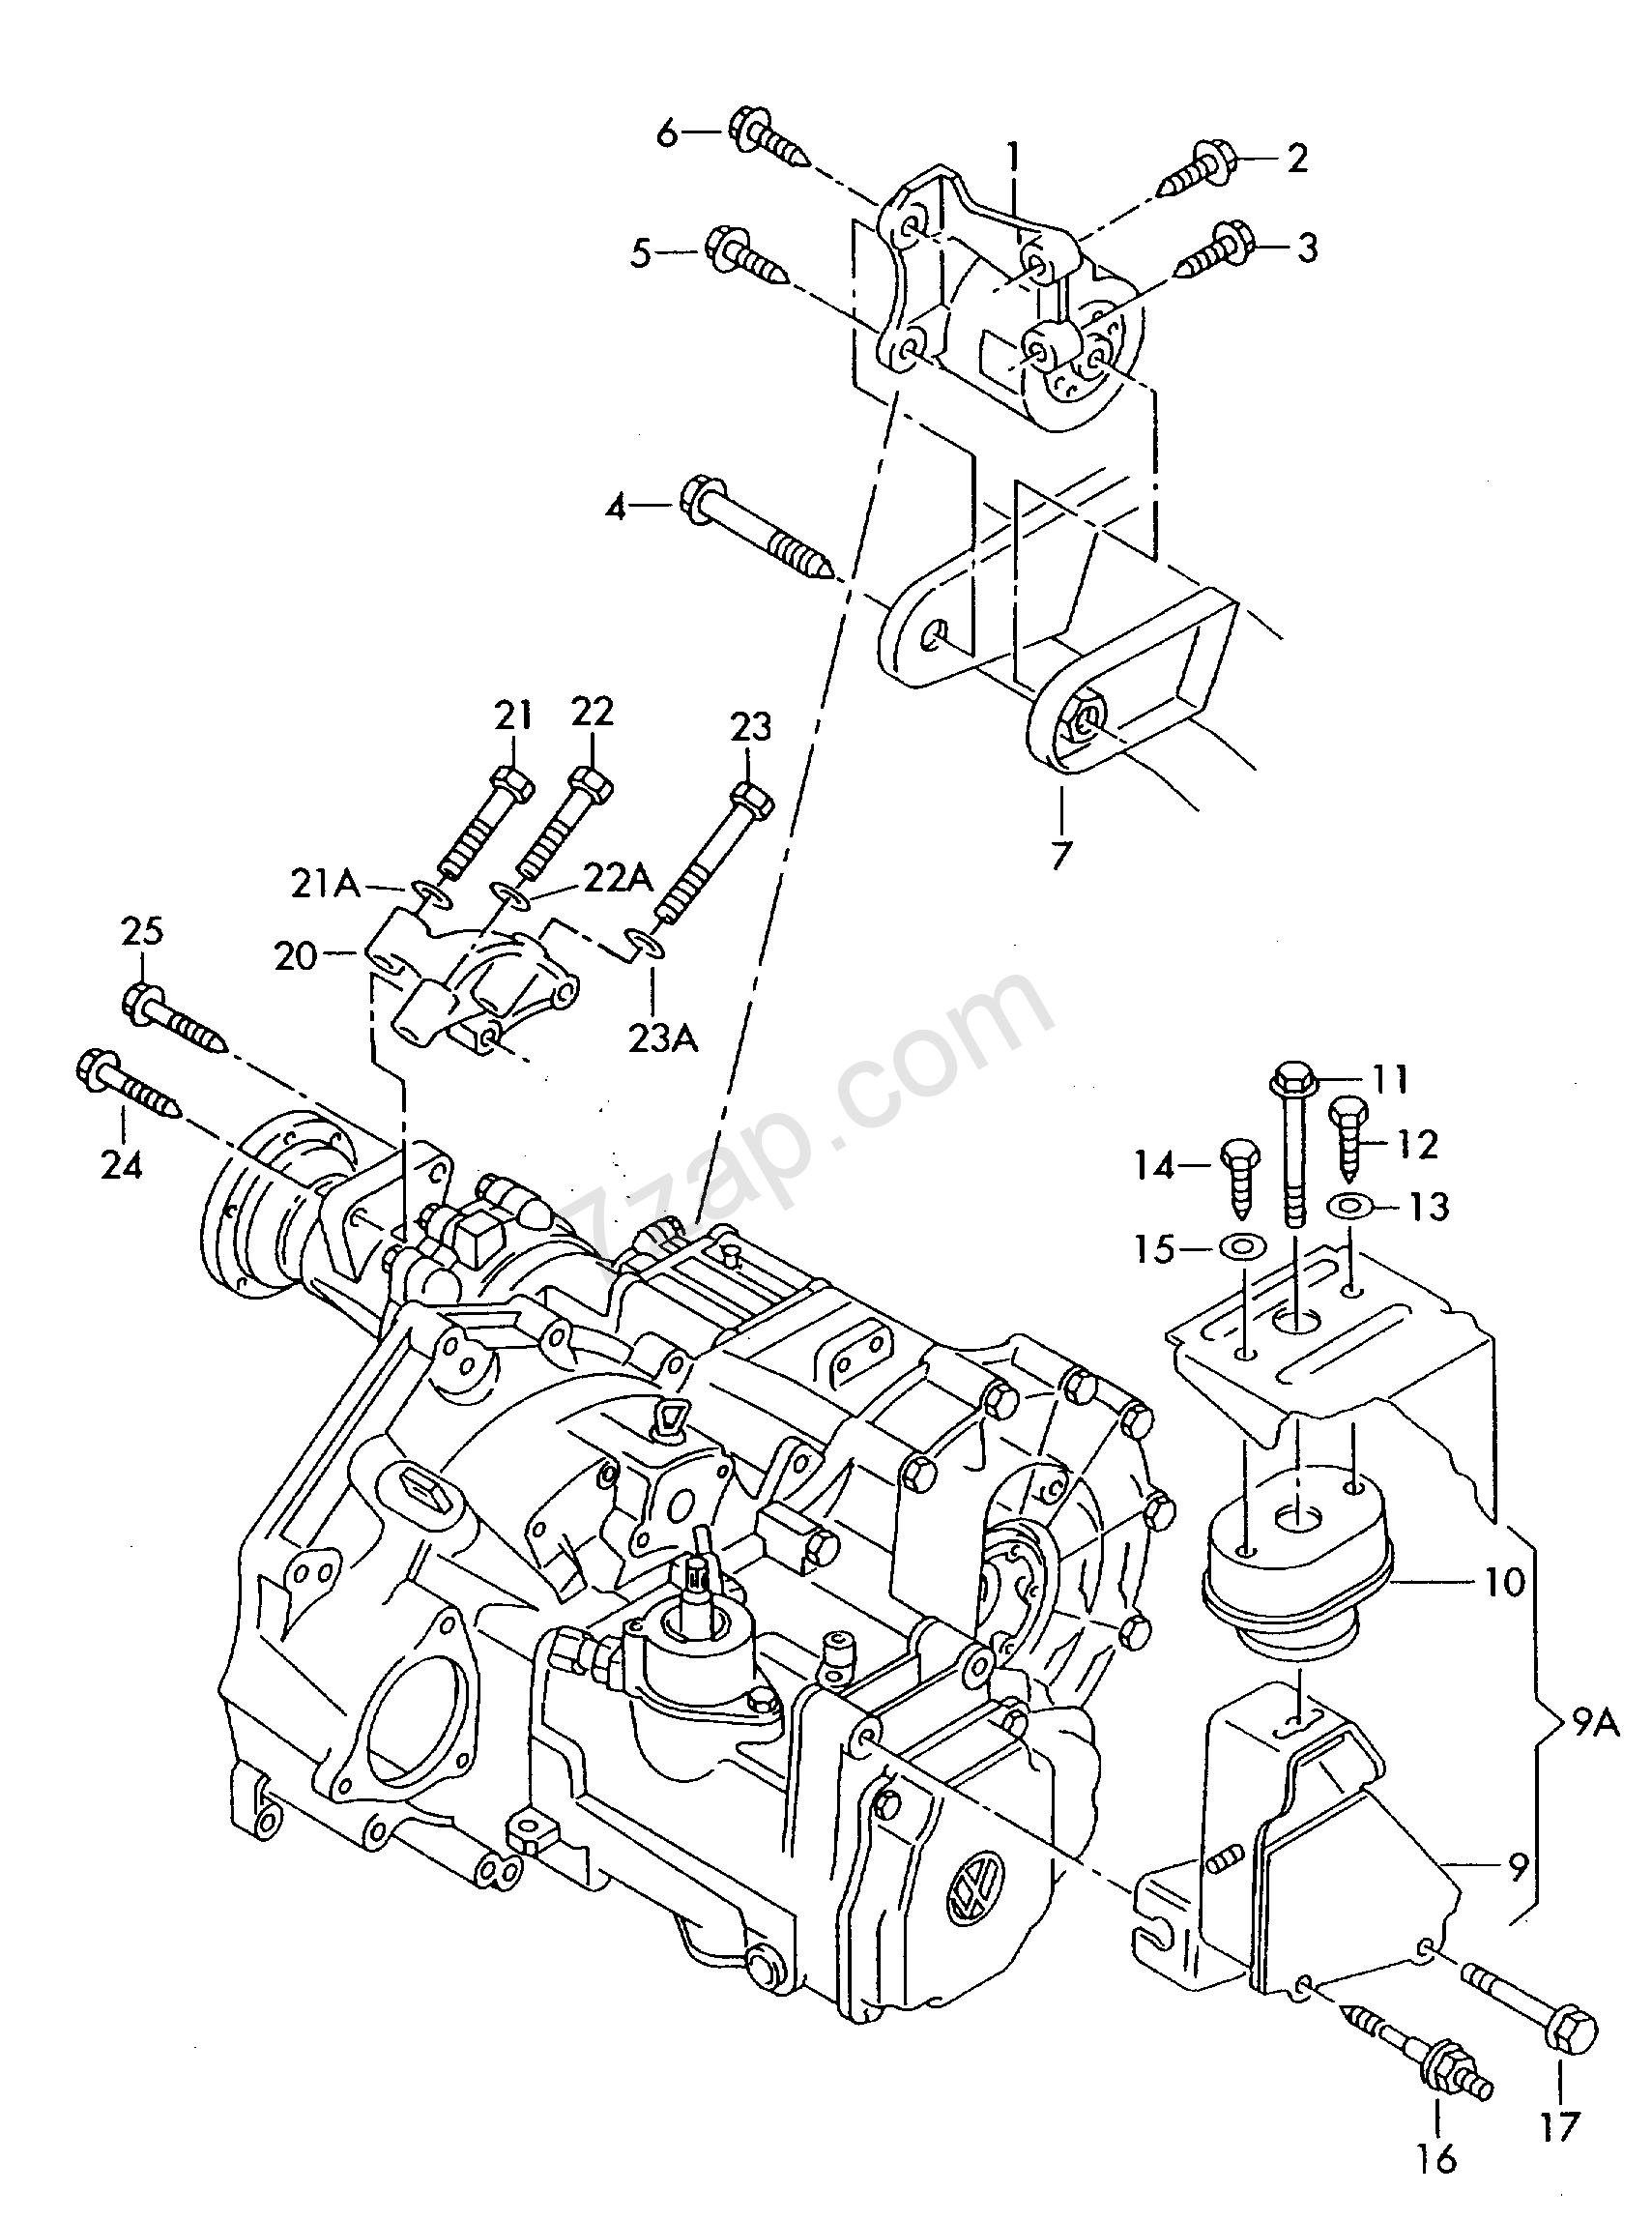 transmission securing parts; 5-speed manual transm